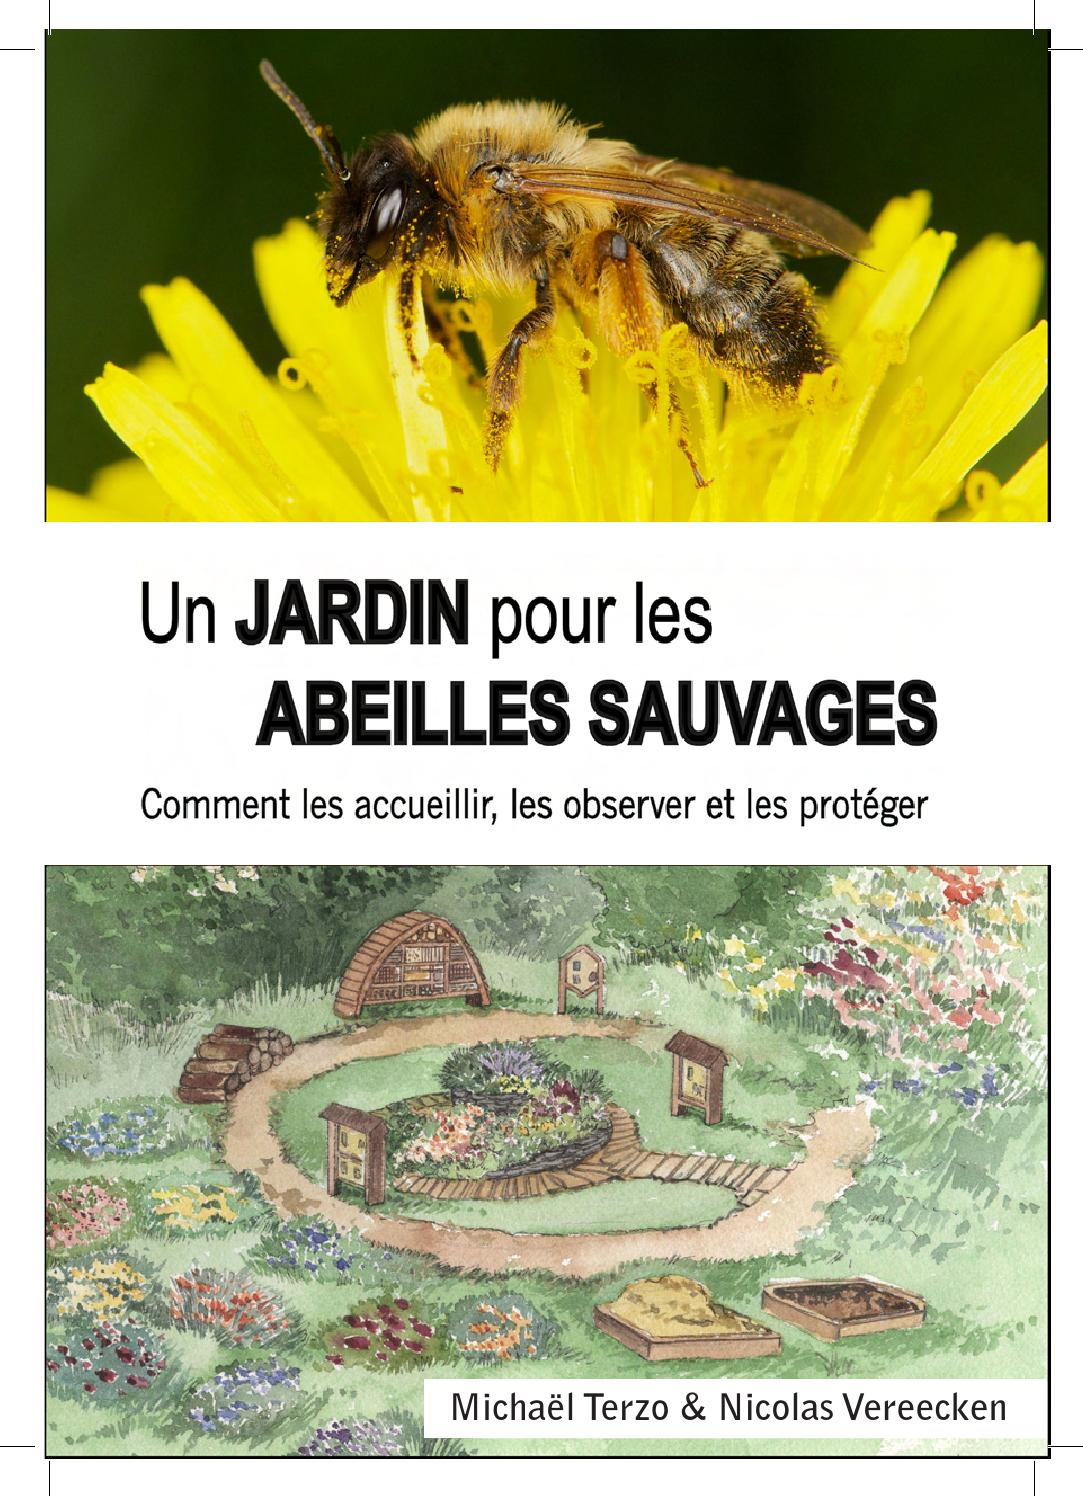 jardin pour abeilles sauvages brochure fr by terretous saint joseph saint ghislain belgique. Black Bedroom Furniture Sets. Home Design Ideas